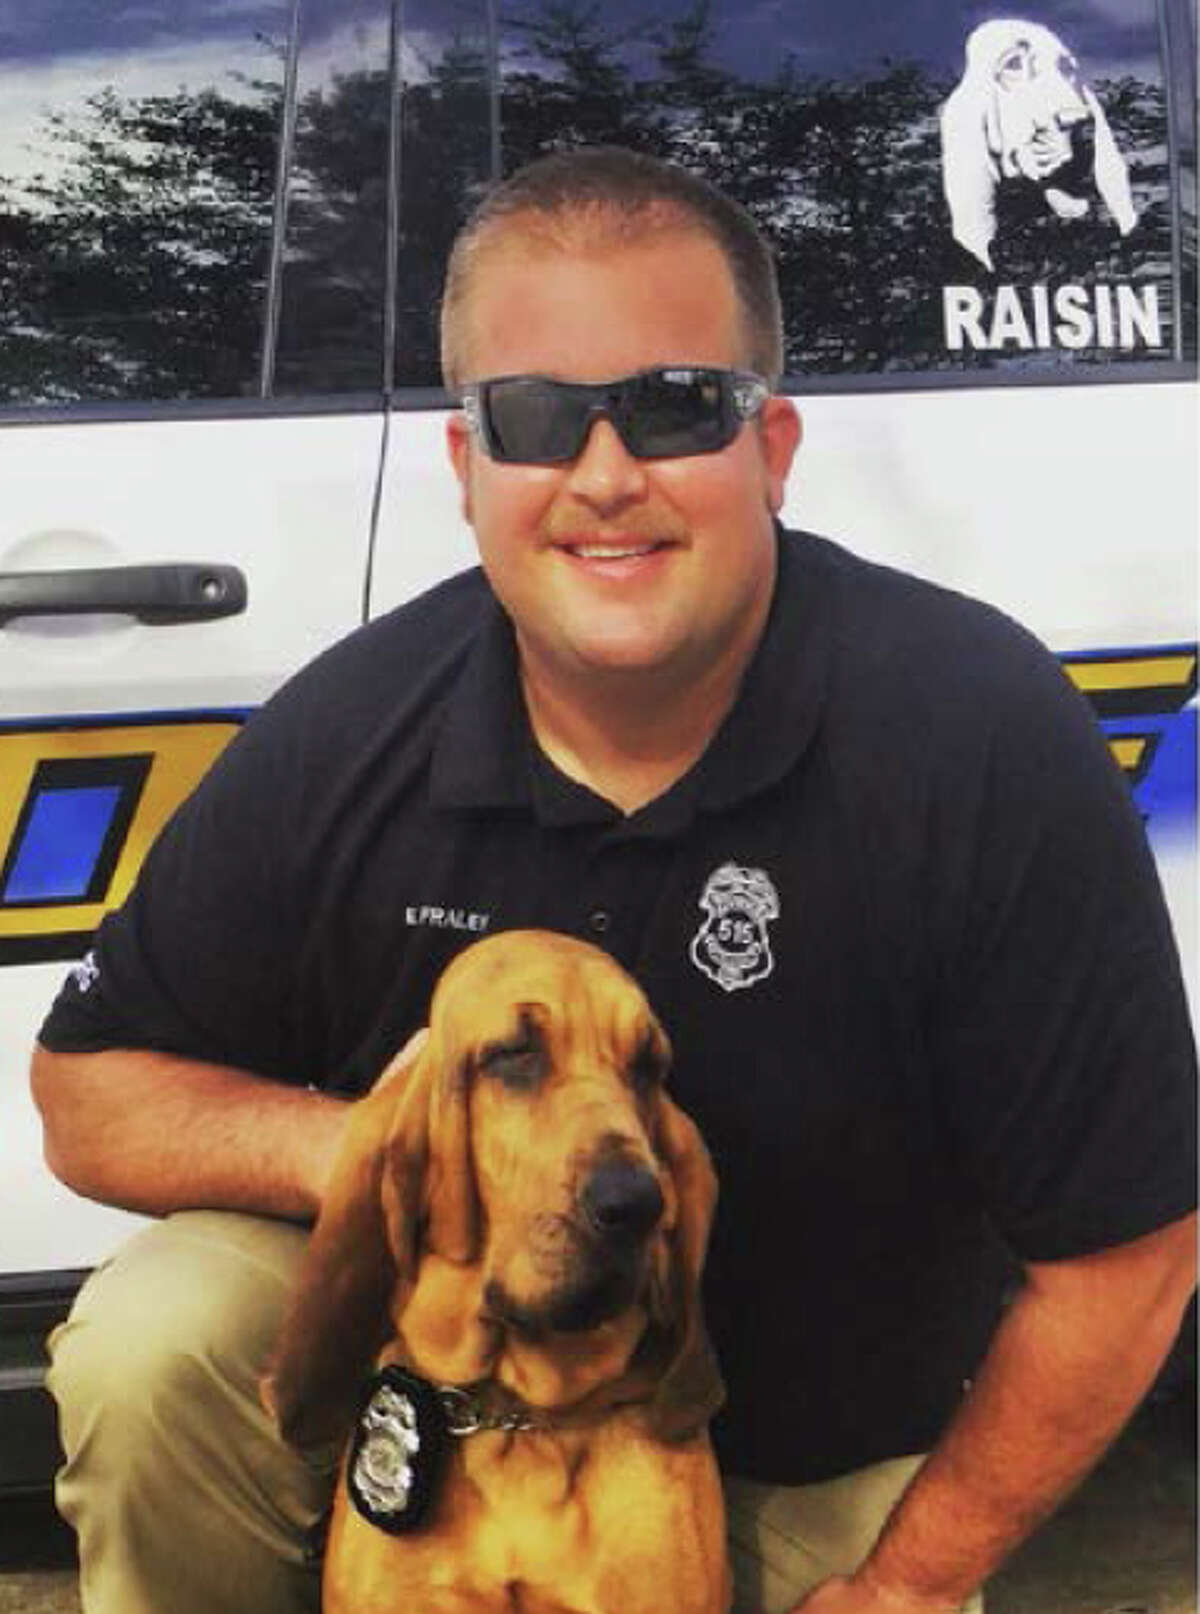 Off-duty Galveston police officer Evan Fraley, shot and killed 35-year-old Toni Collins, Thursday, March 9, 2017 in Galveston. Officer Evan Fraley was with his wife and child near 11th Street and Broadway Avenue J around 6 p.m. when he saw a disturbance, police said.